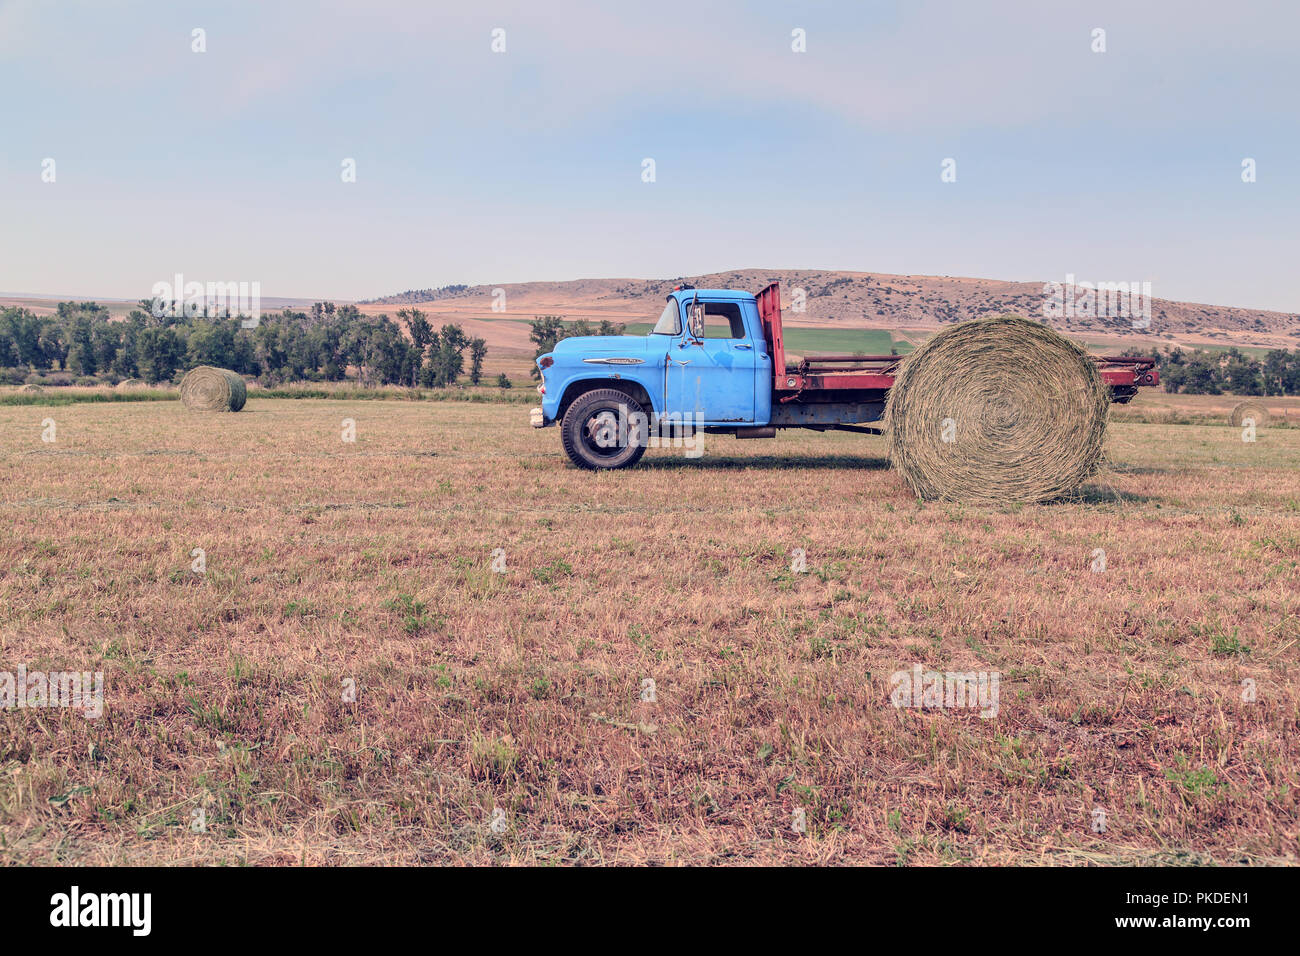 Hay bales and a vintage farm truck in the town of Fishtale, Montana. - Stock Image